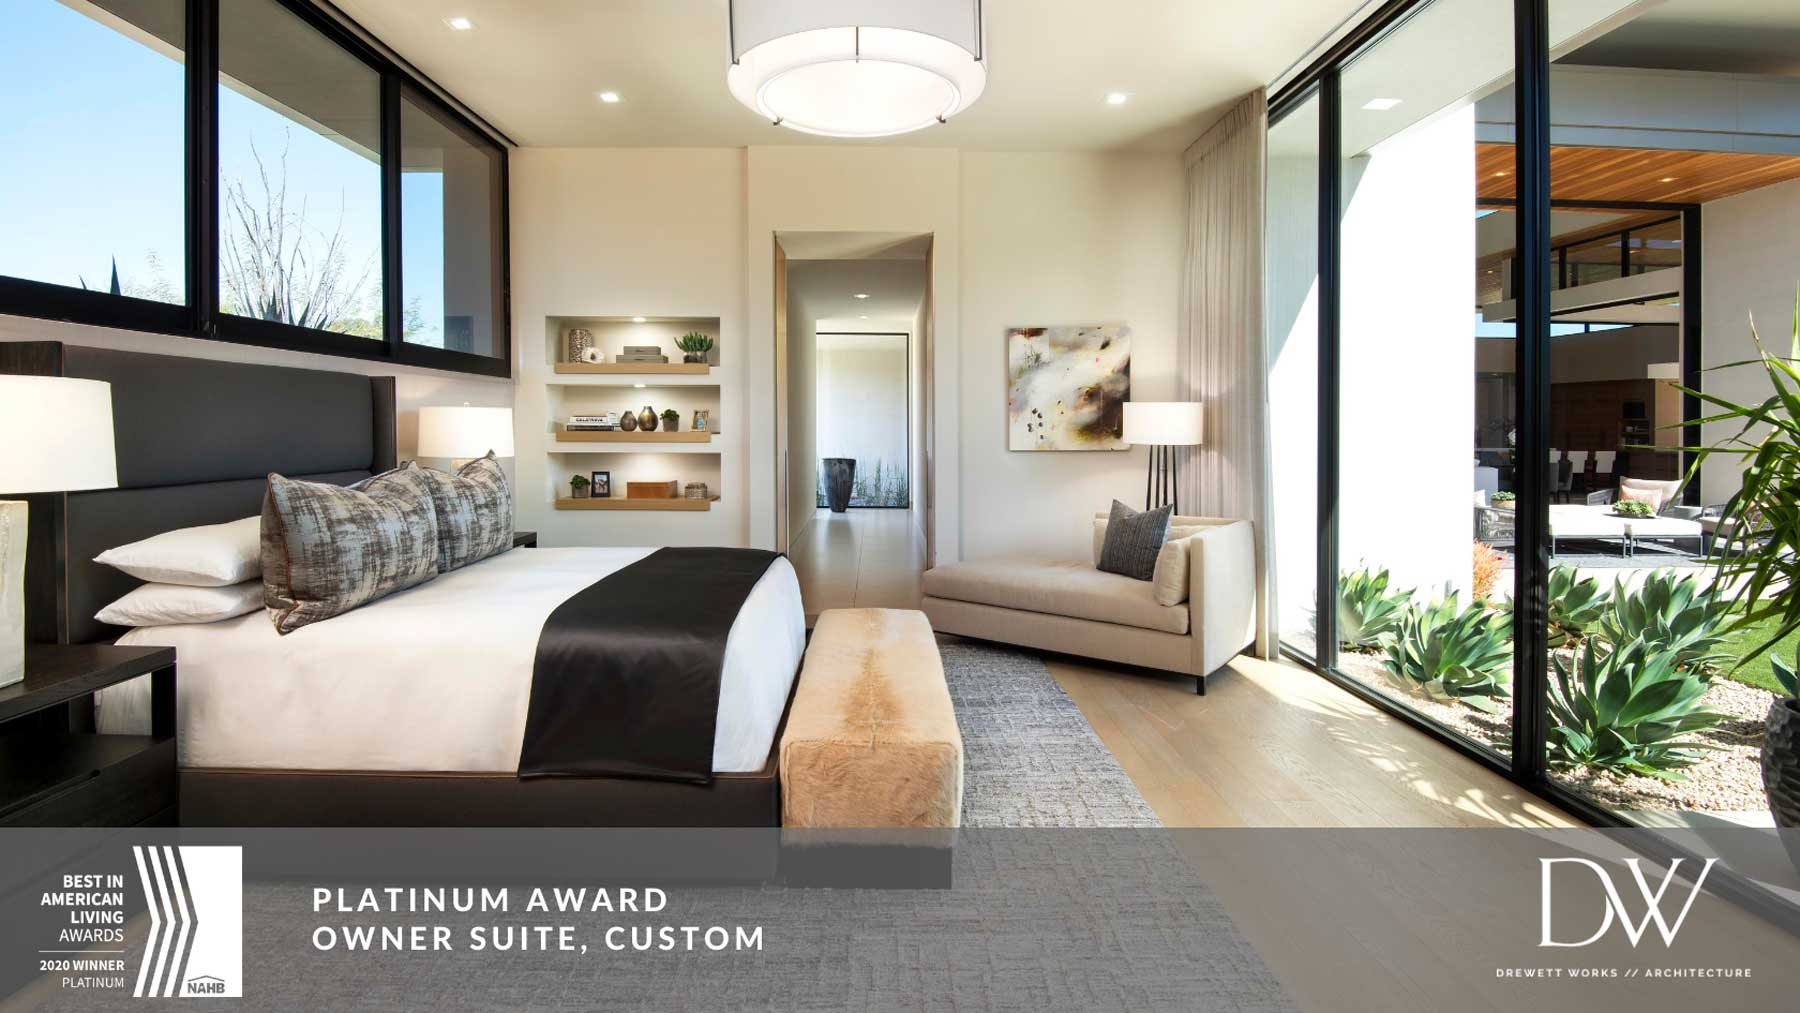 Owner Suite, Custom Platinum Award winner BALA Awards 2020